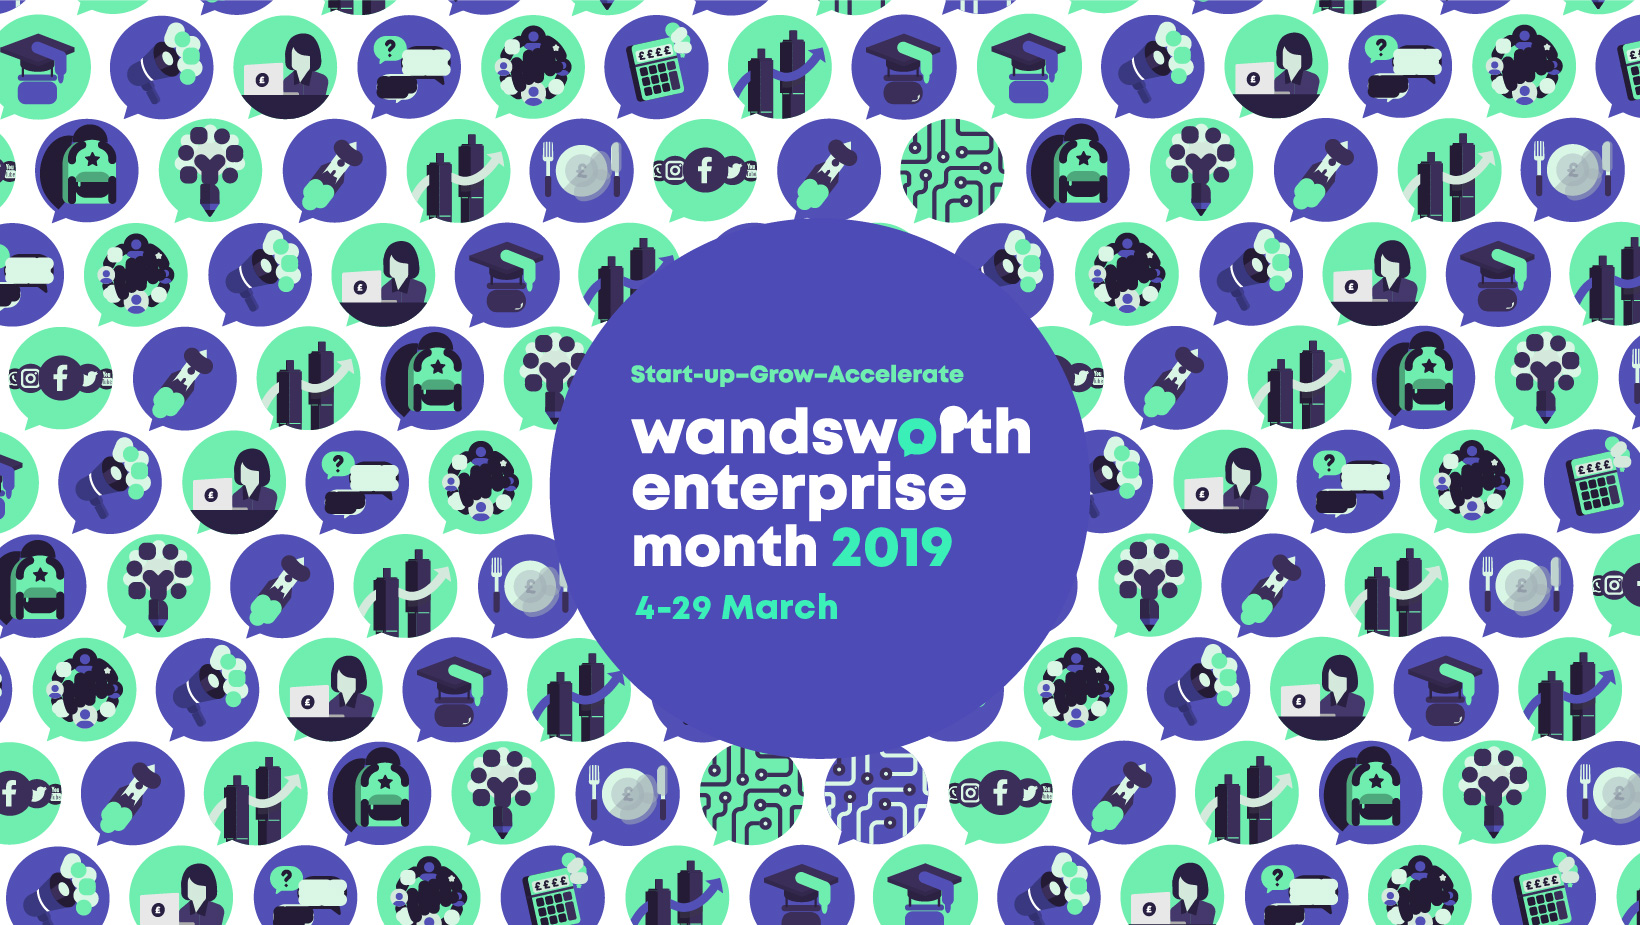 Wandsworth_Enterprise_Month